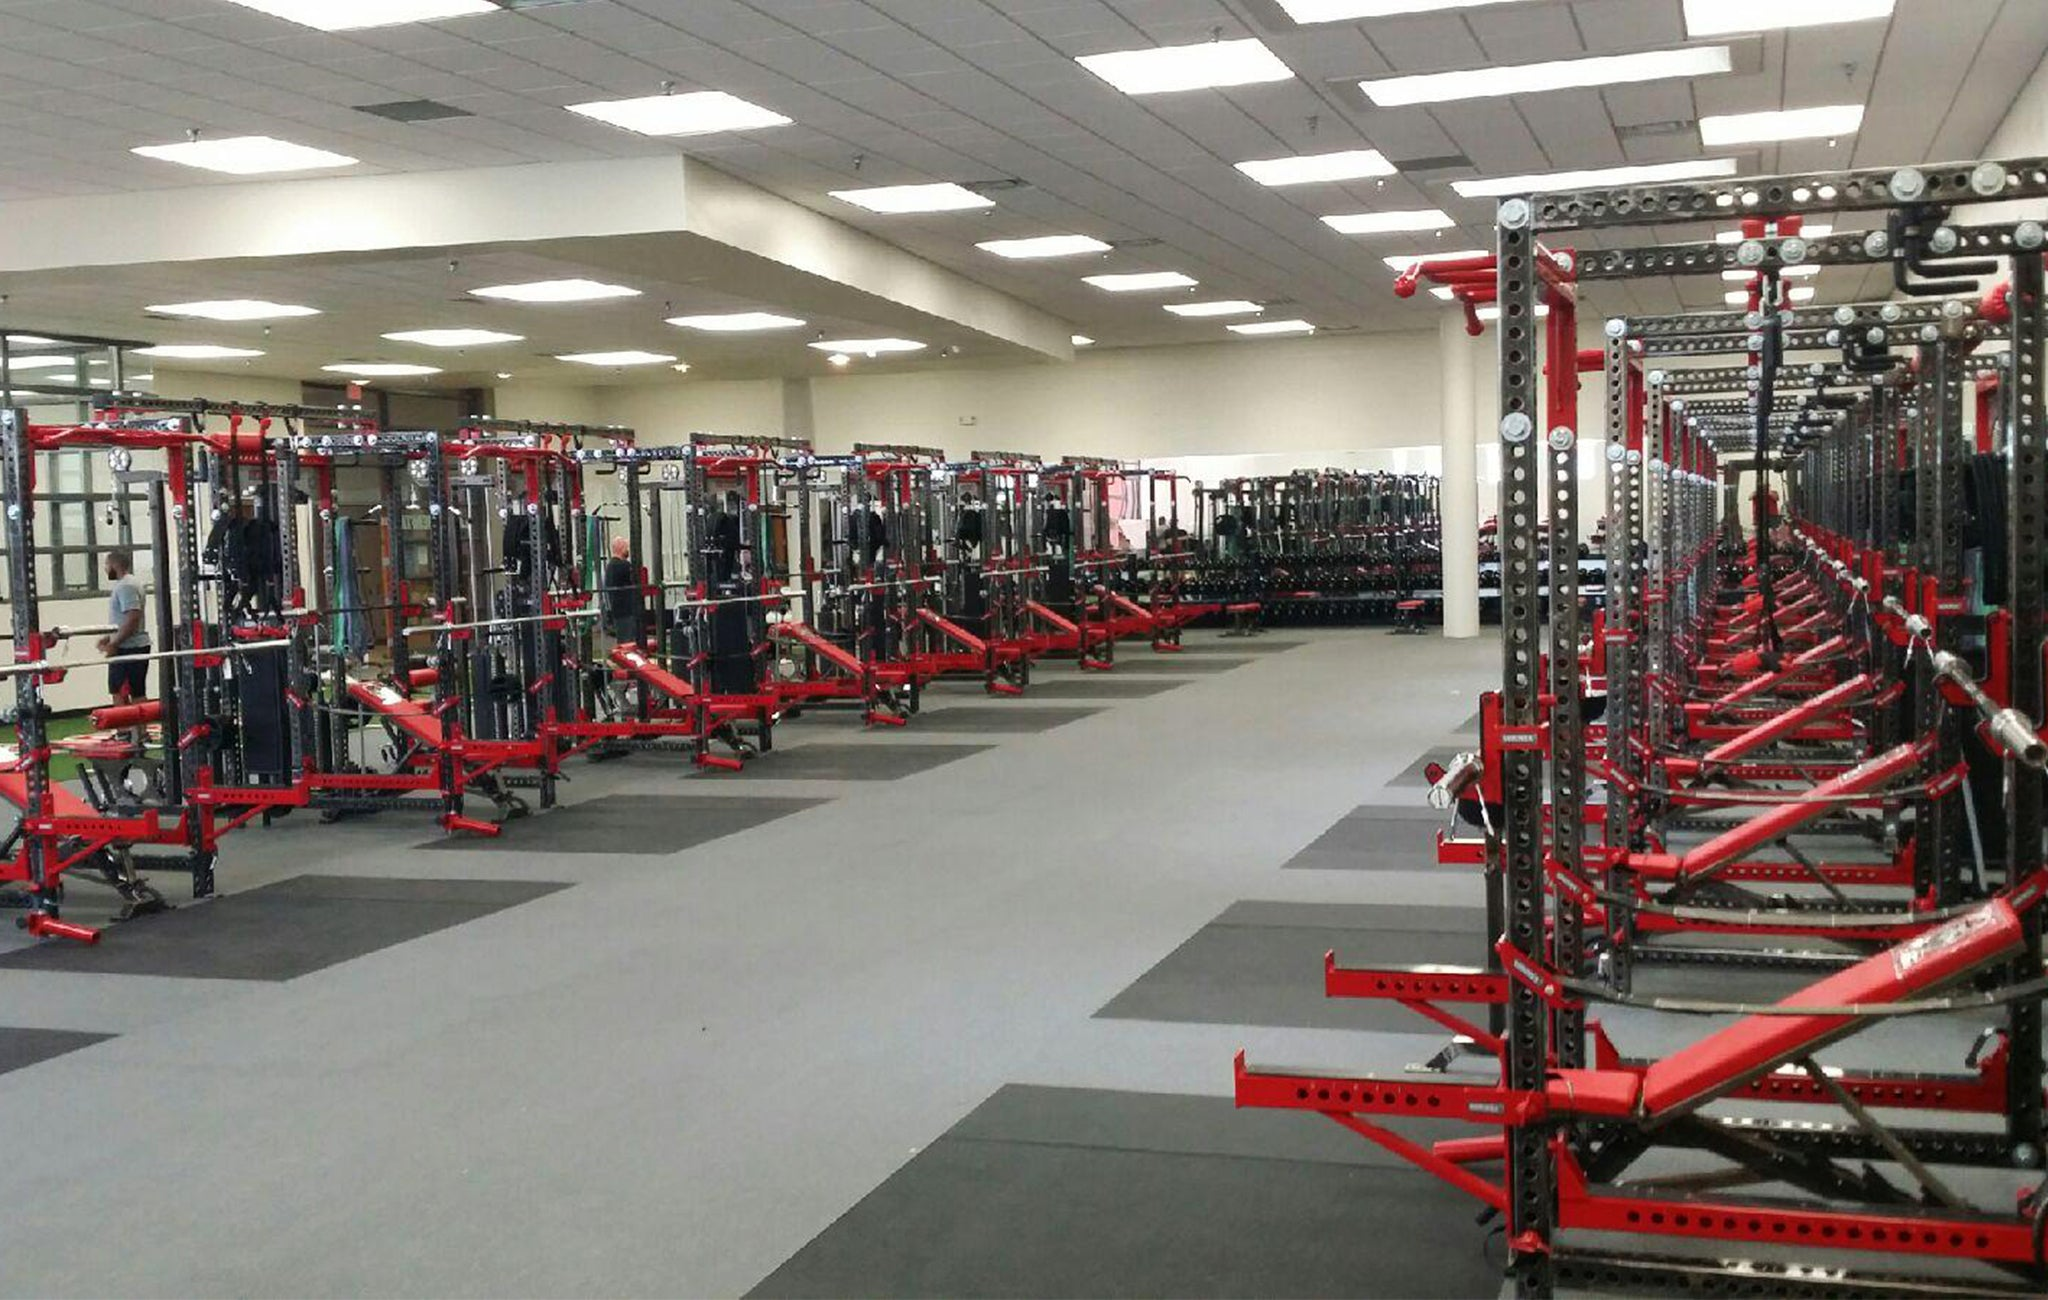 University of New Mexico Weight Room